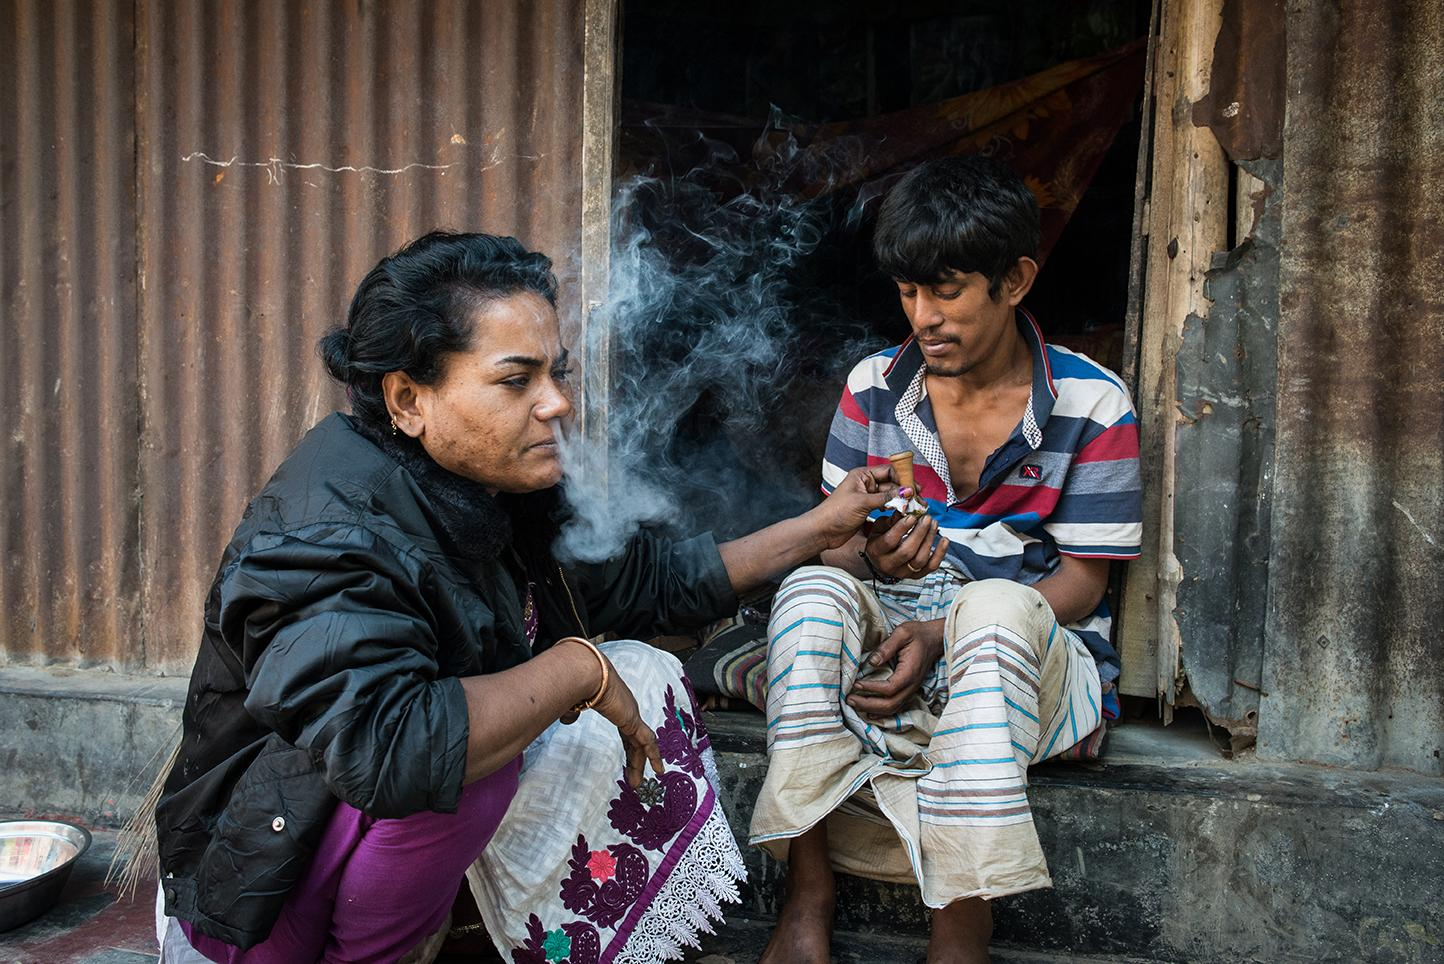 Nilu, 30 is a sex worker who has been staying in the brothel for twenty years. She started working when she was ten years old in Daulatadia Brothel in Daulatadia, Rajbari, Bangladesh. She is heavily addicted to yaba, a form of methamphetamine that is smuggled from Myanmar where it is produced and across the border into Bangladesh. Daulatadia is considered one of the largest brothels in the world and serves roughly 2500-3000 men daily. Bangladesh is the only Muslim country in the world where prostitution is legal. Though legally prostitutes must be at least 18 years of age many are tricked into the profession at a very young age.